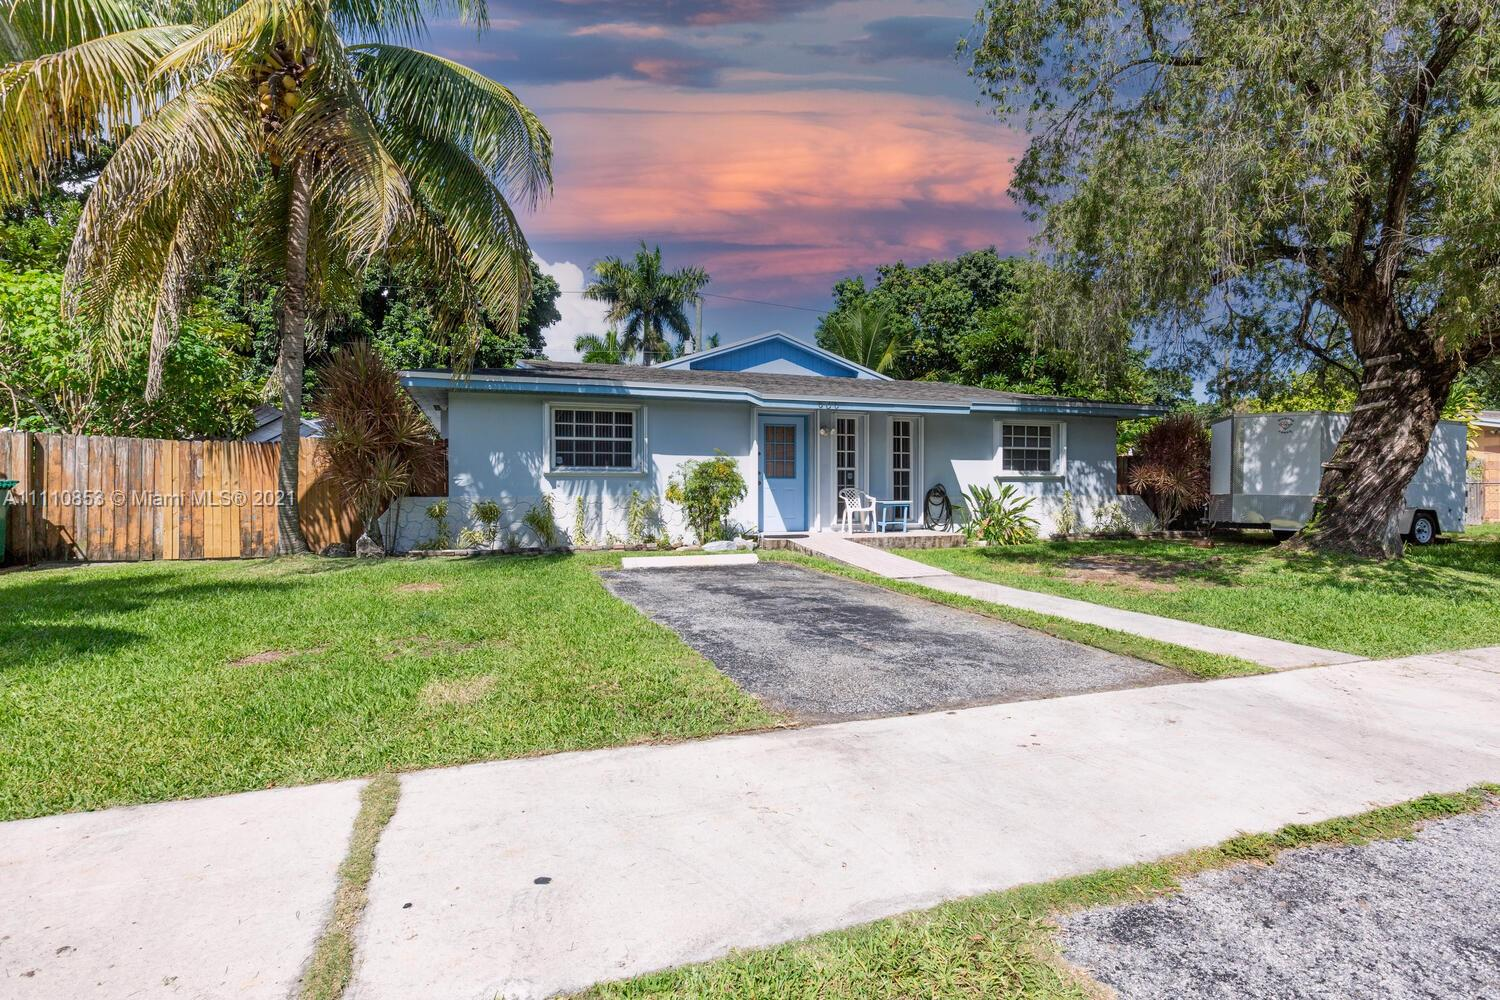 Single Family Home,For Sale,636 SW 7th St, Florida City, Florida 33034,Brickell,realty,broker,condos near me